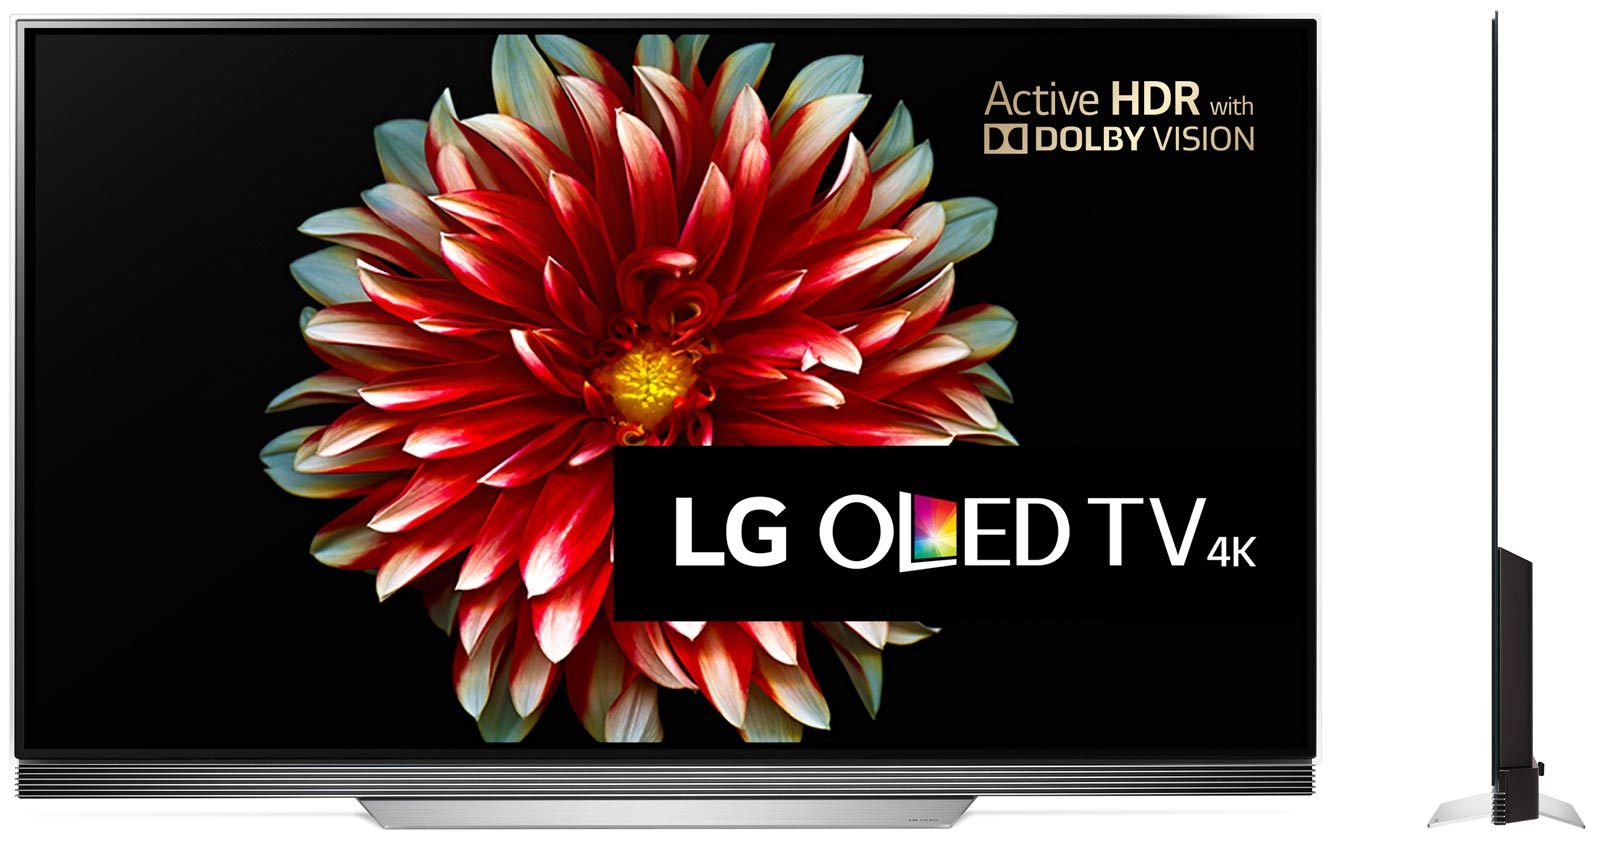 LG 2017 TV line-up - full overview with prices - FlatpanelsHD